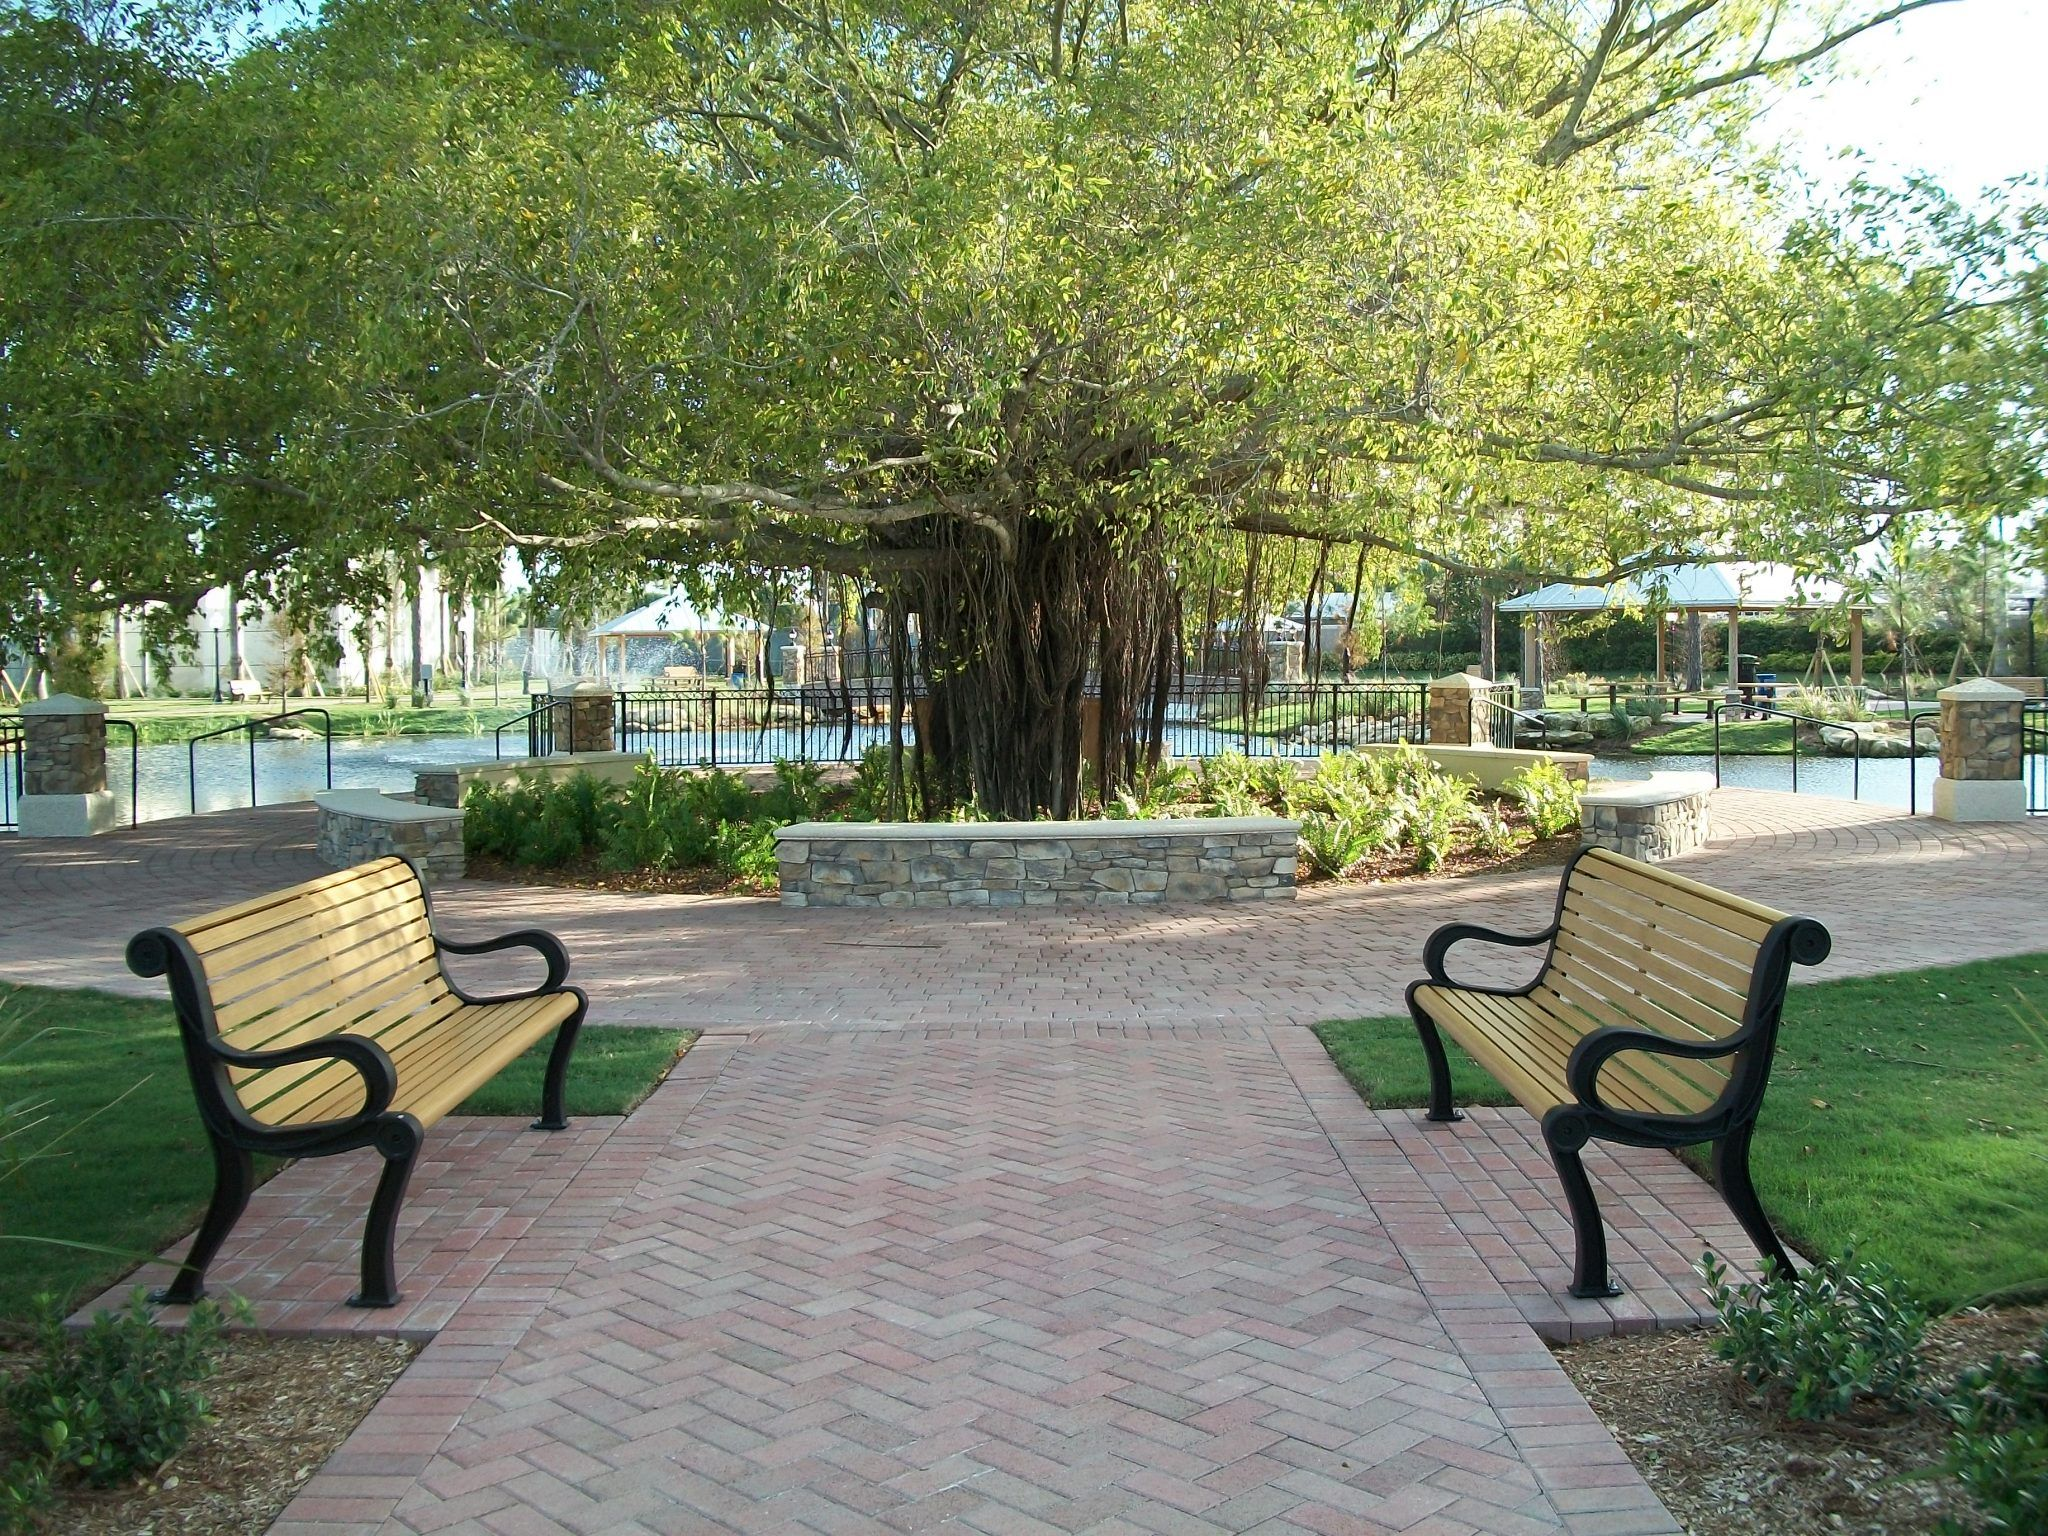 Park with greenery and two benches facing each other